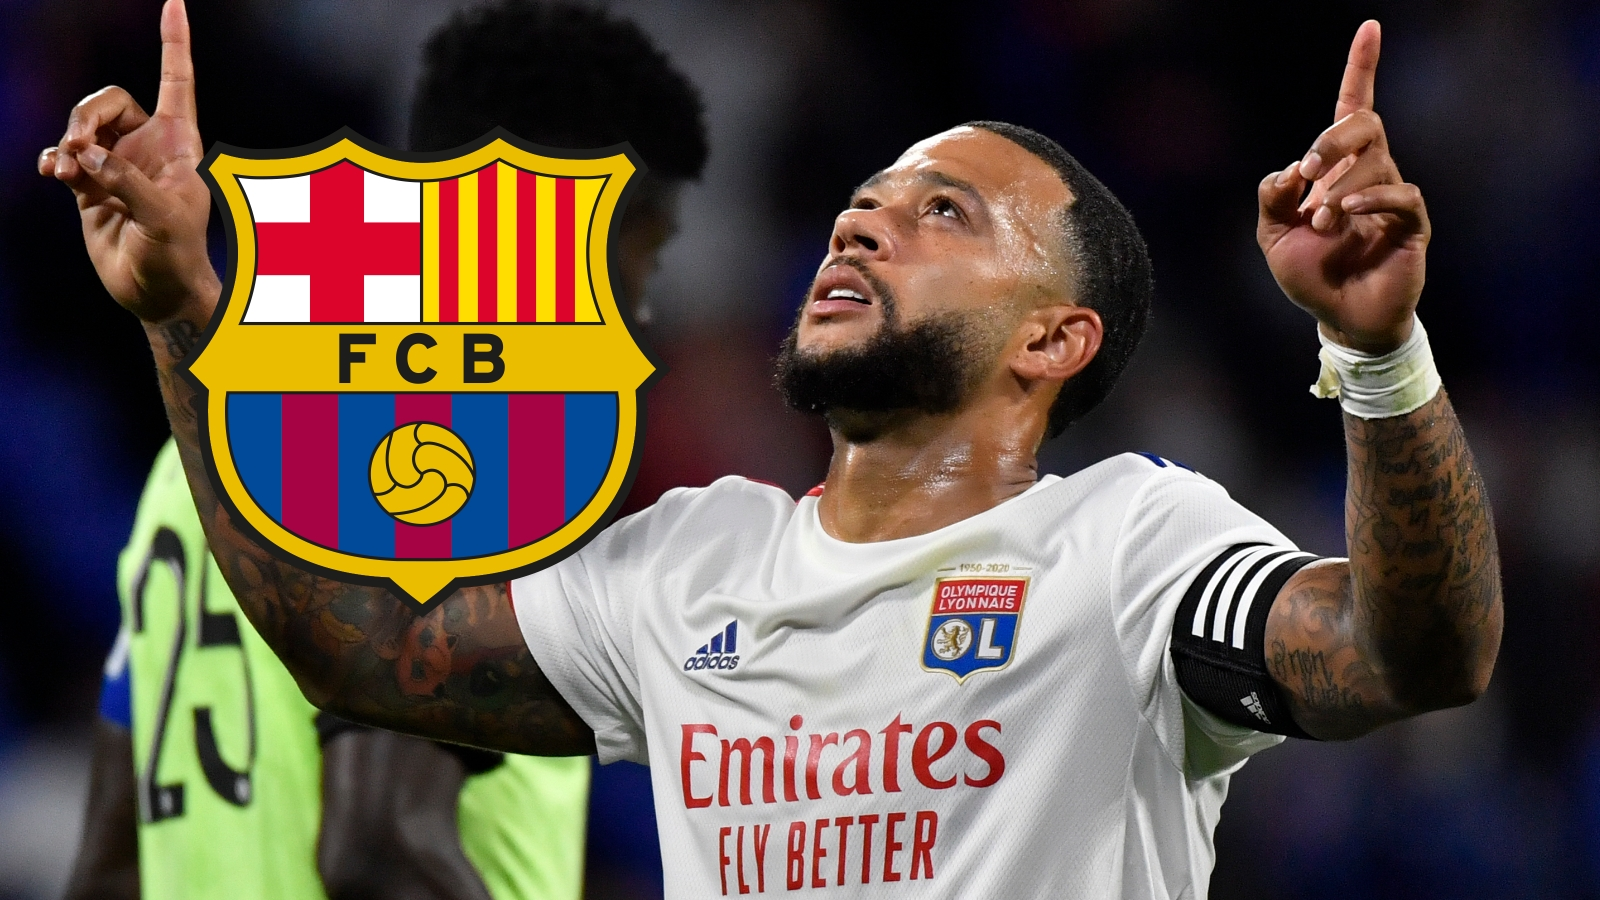 'Depay has talent, but he's not Messi or Ronaldo' - Van Gaal not certain Barcelona target would adapt to life at Camp Nou